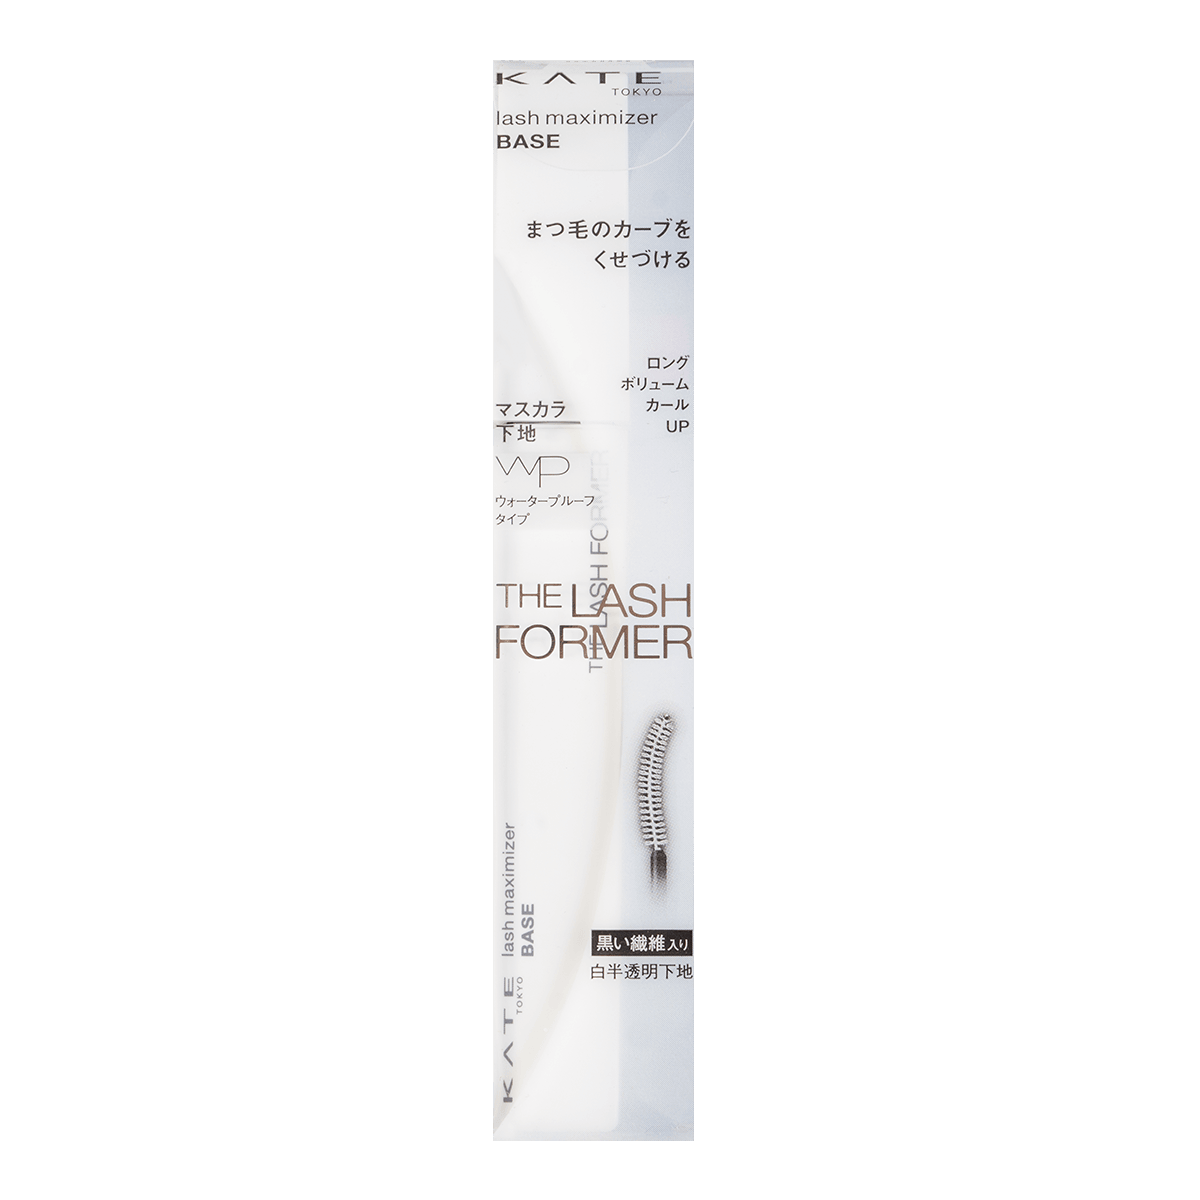 KANEBO KATE Lash Maximizer Eyelash Plus White EX-1 1pc